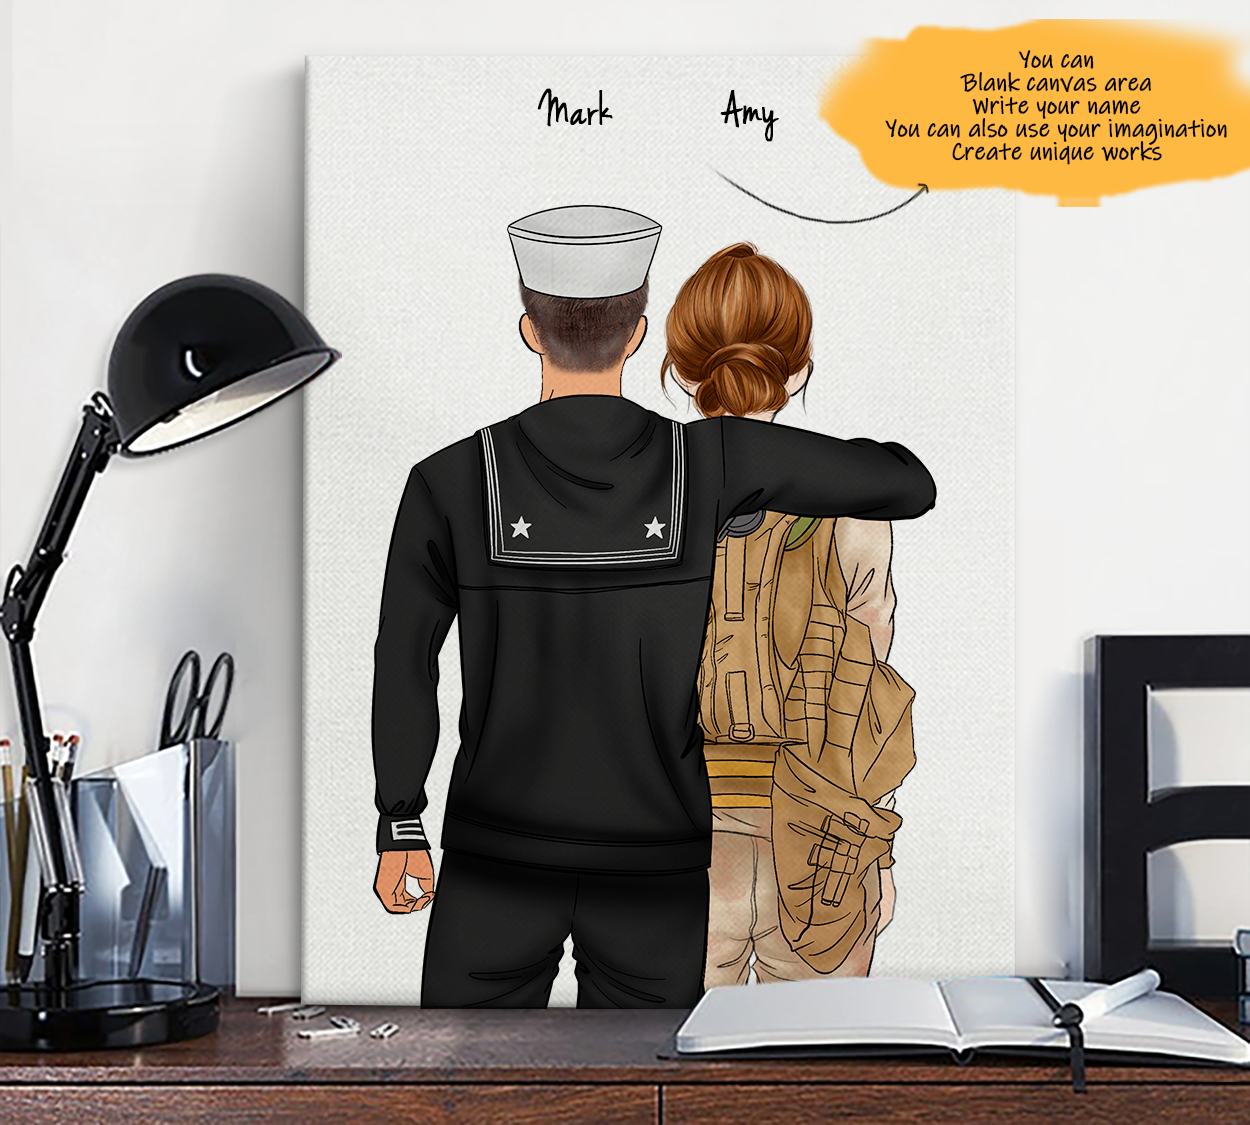 He is My Friend! Hand Draw Custom Canvas-Print Gift NavyUS-Tan&Soldier1